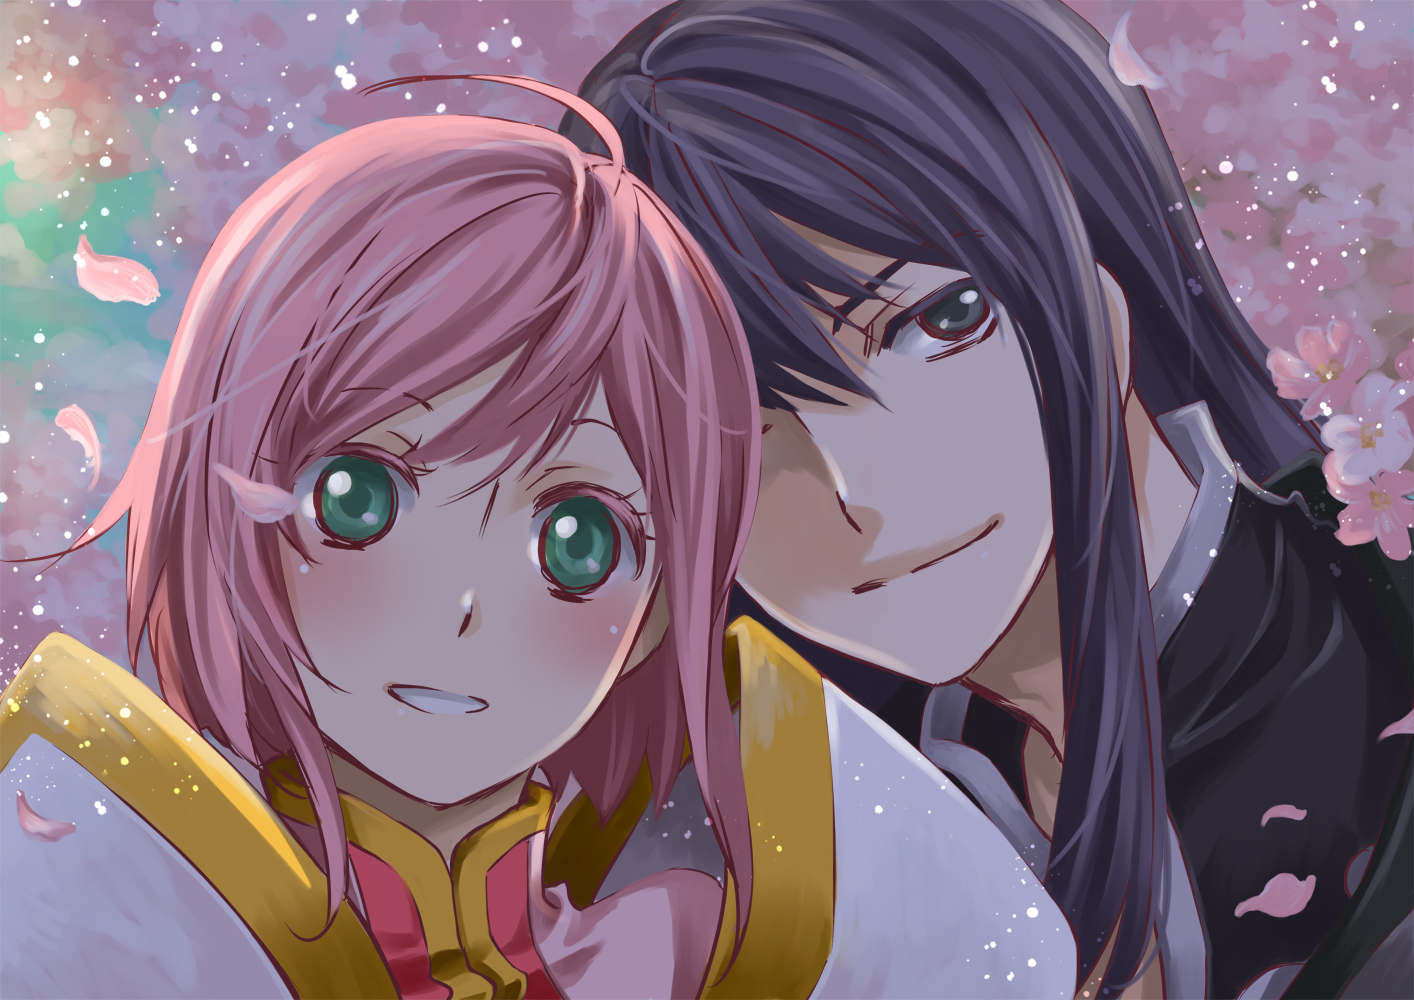 Tales of Vesperia Wallpaper   ForWallpapercom 1414x1000